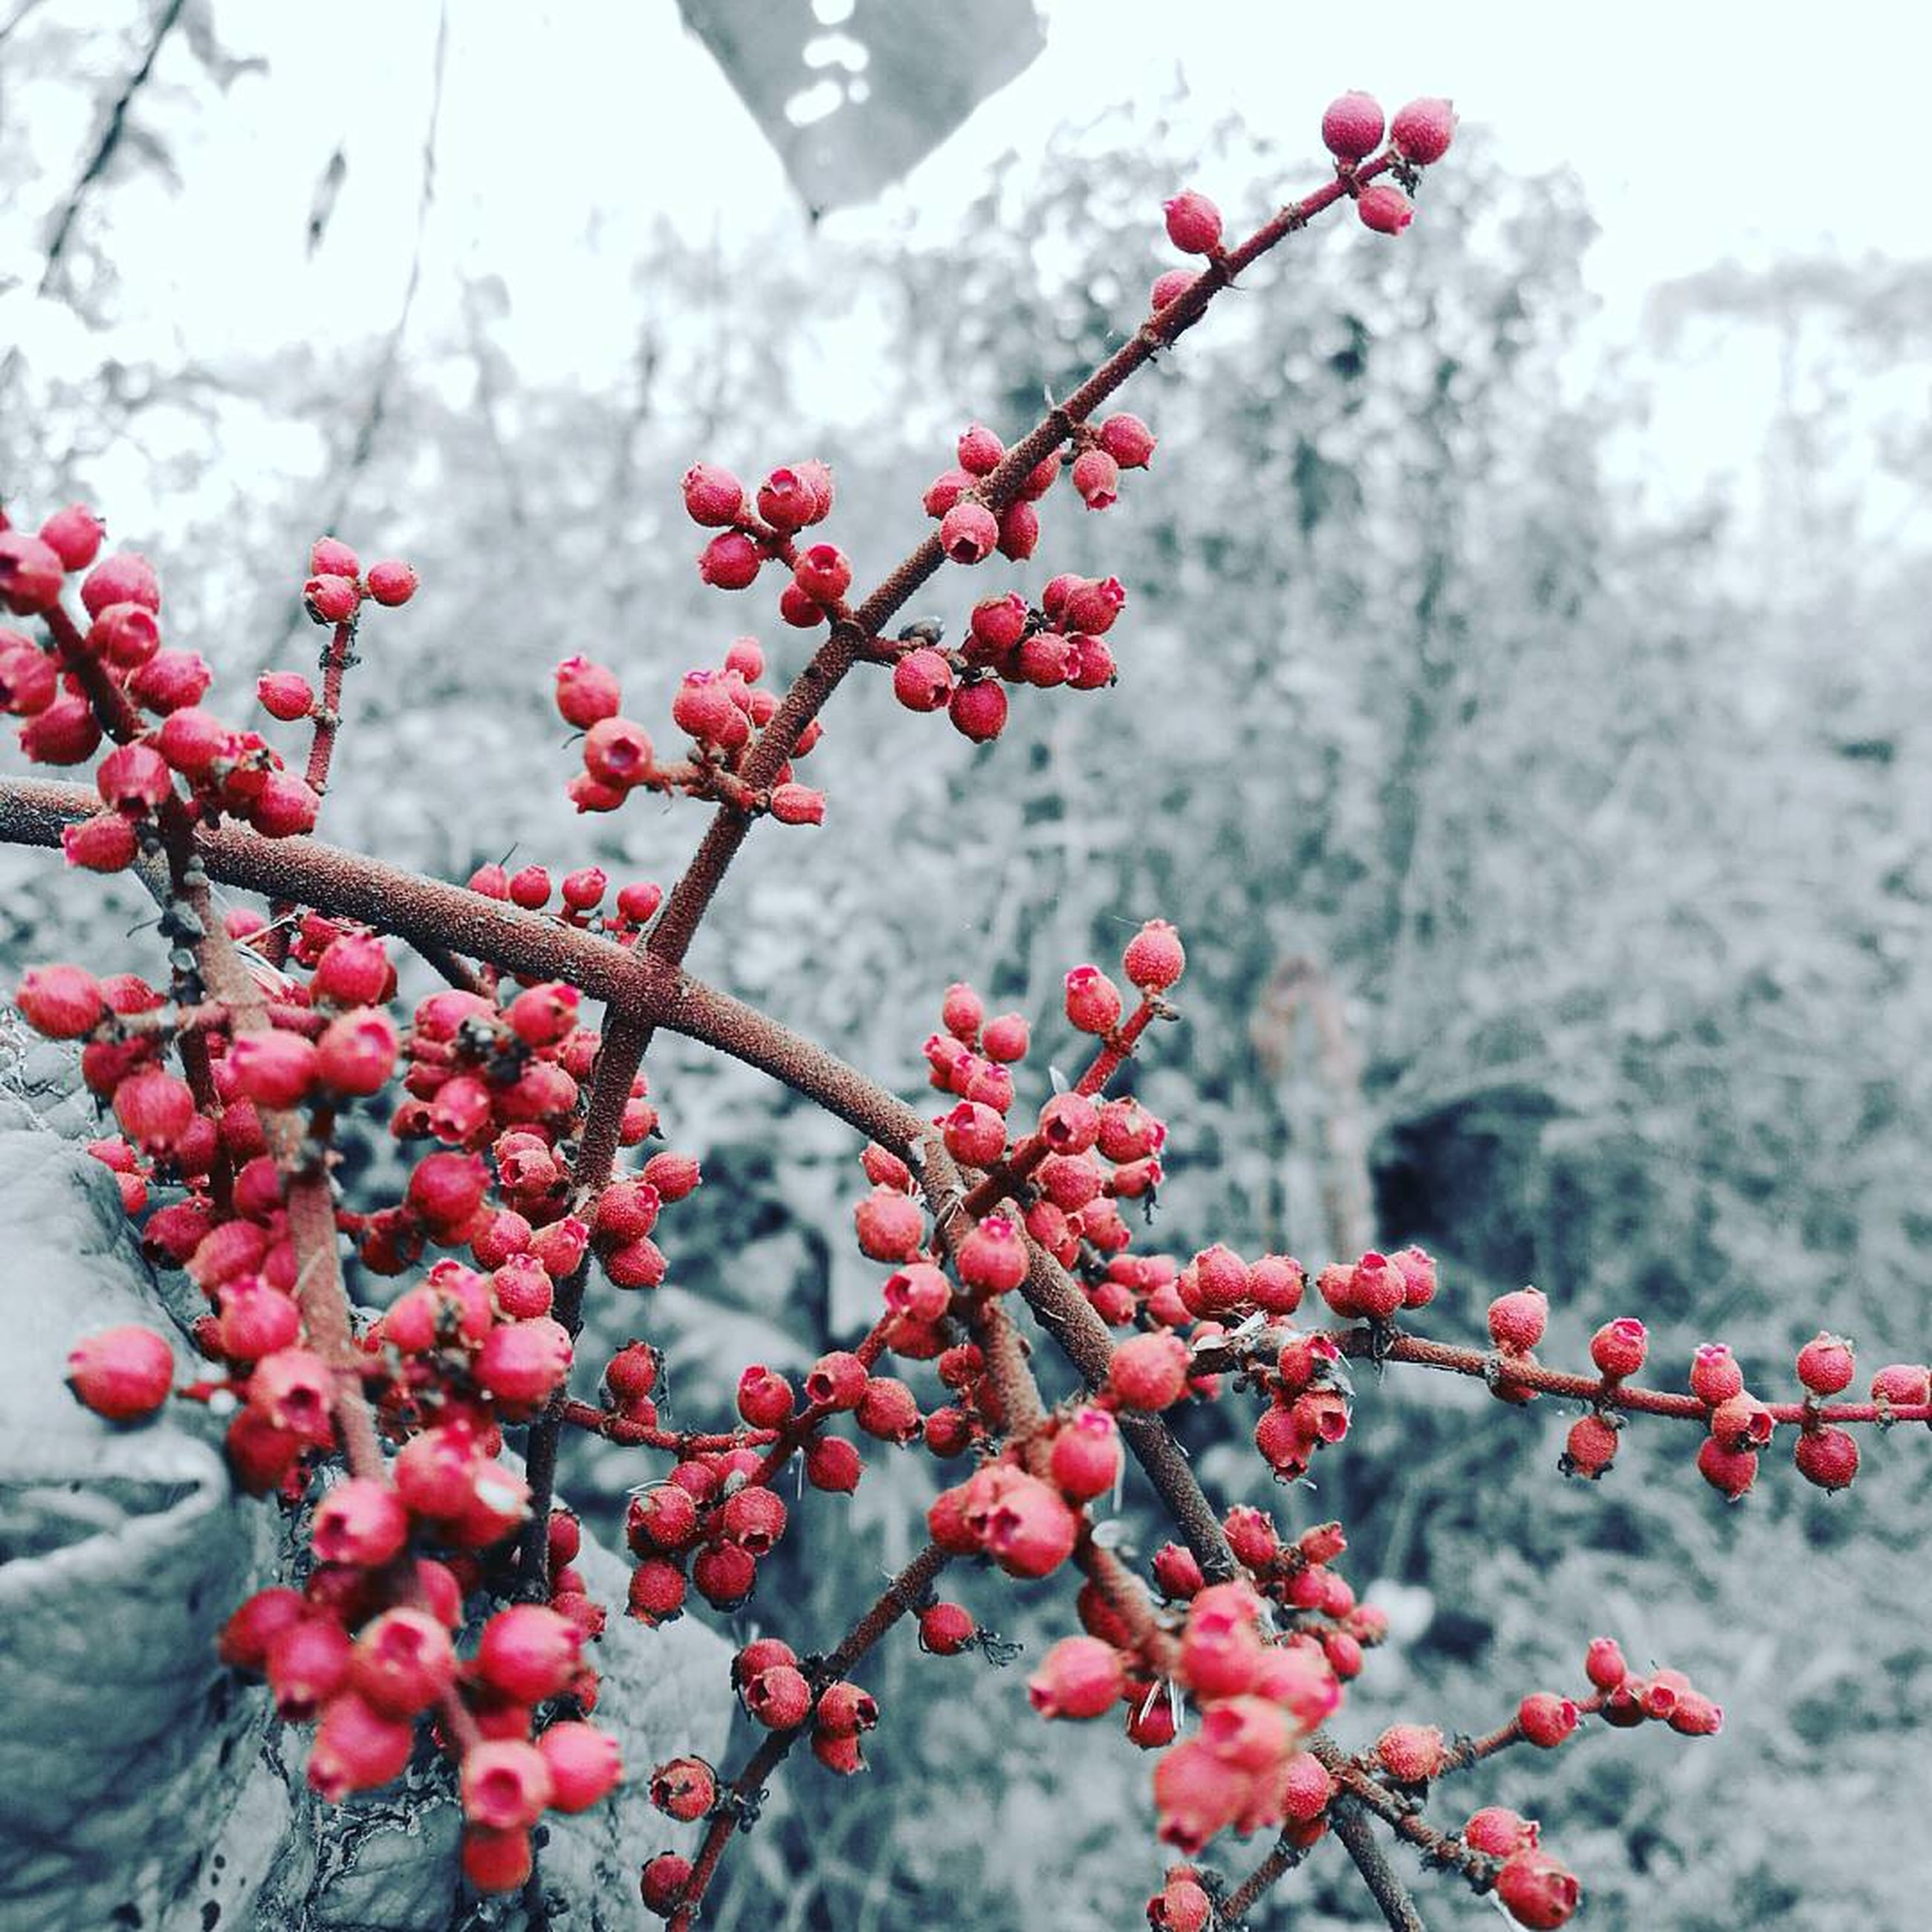 growth, nature, tree, red, freshness, beauty in nature, close-up, branch, fruit, outdoors, plant, no people, springtime, flower, food and drink, winter, day, rowanberry, cold temperature, plum blossom, fragility